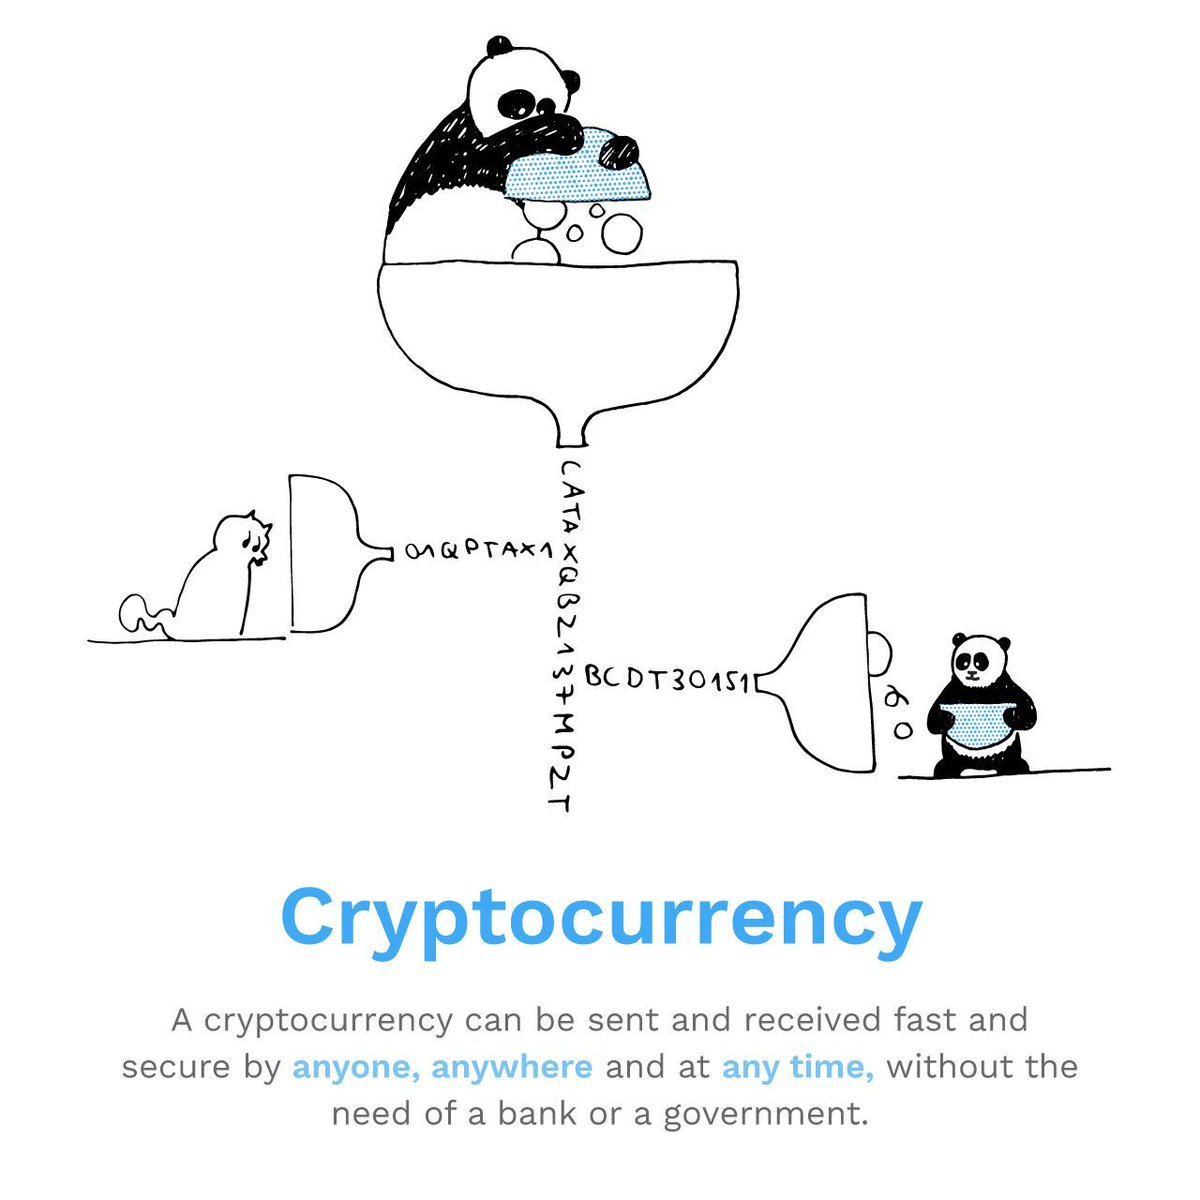 C is for Cryptocurrency! Were explaining the most important Bitcoin and Blockchain terms as part of our ongoing series, check back every Monday and Friday to learn new terms. #bitpanda #crypotcurrency #blockchain